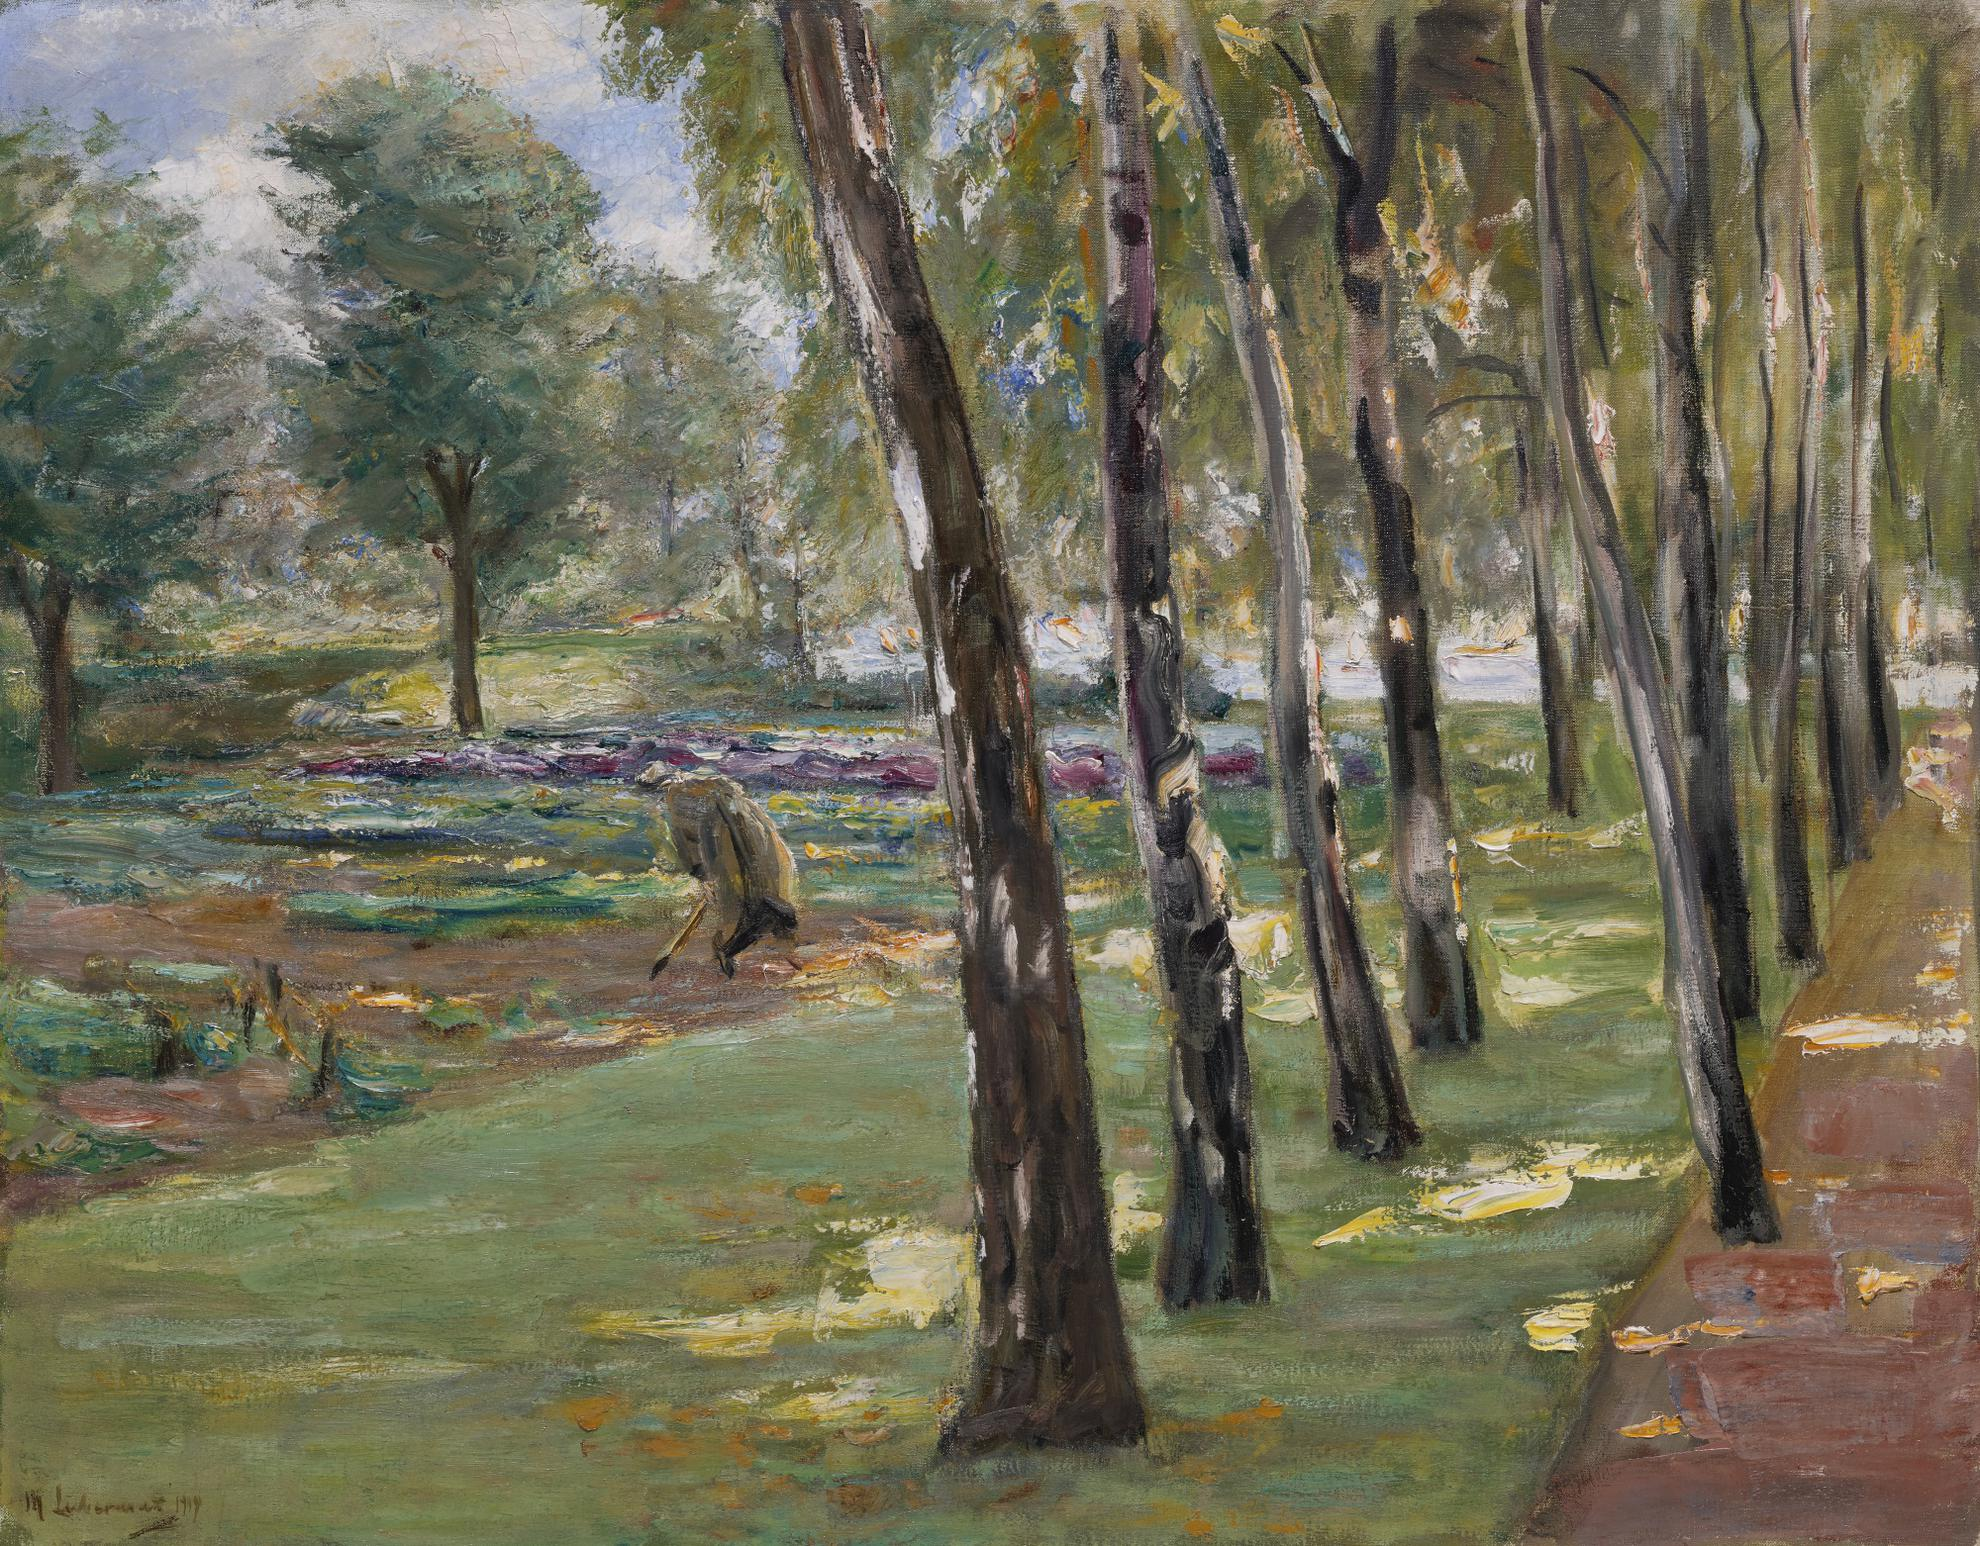 Max Liebermann-Die Birkenallee Im Wannseegarten, Blick Auf Das Kohlfeld (An Avenue Of Birch Trees In The Wannsee Garden, A View Of A Cabbage Field)-1919